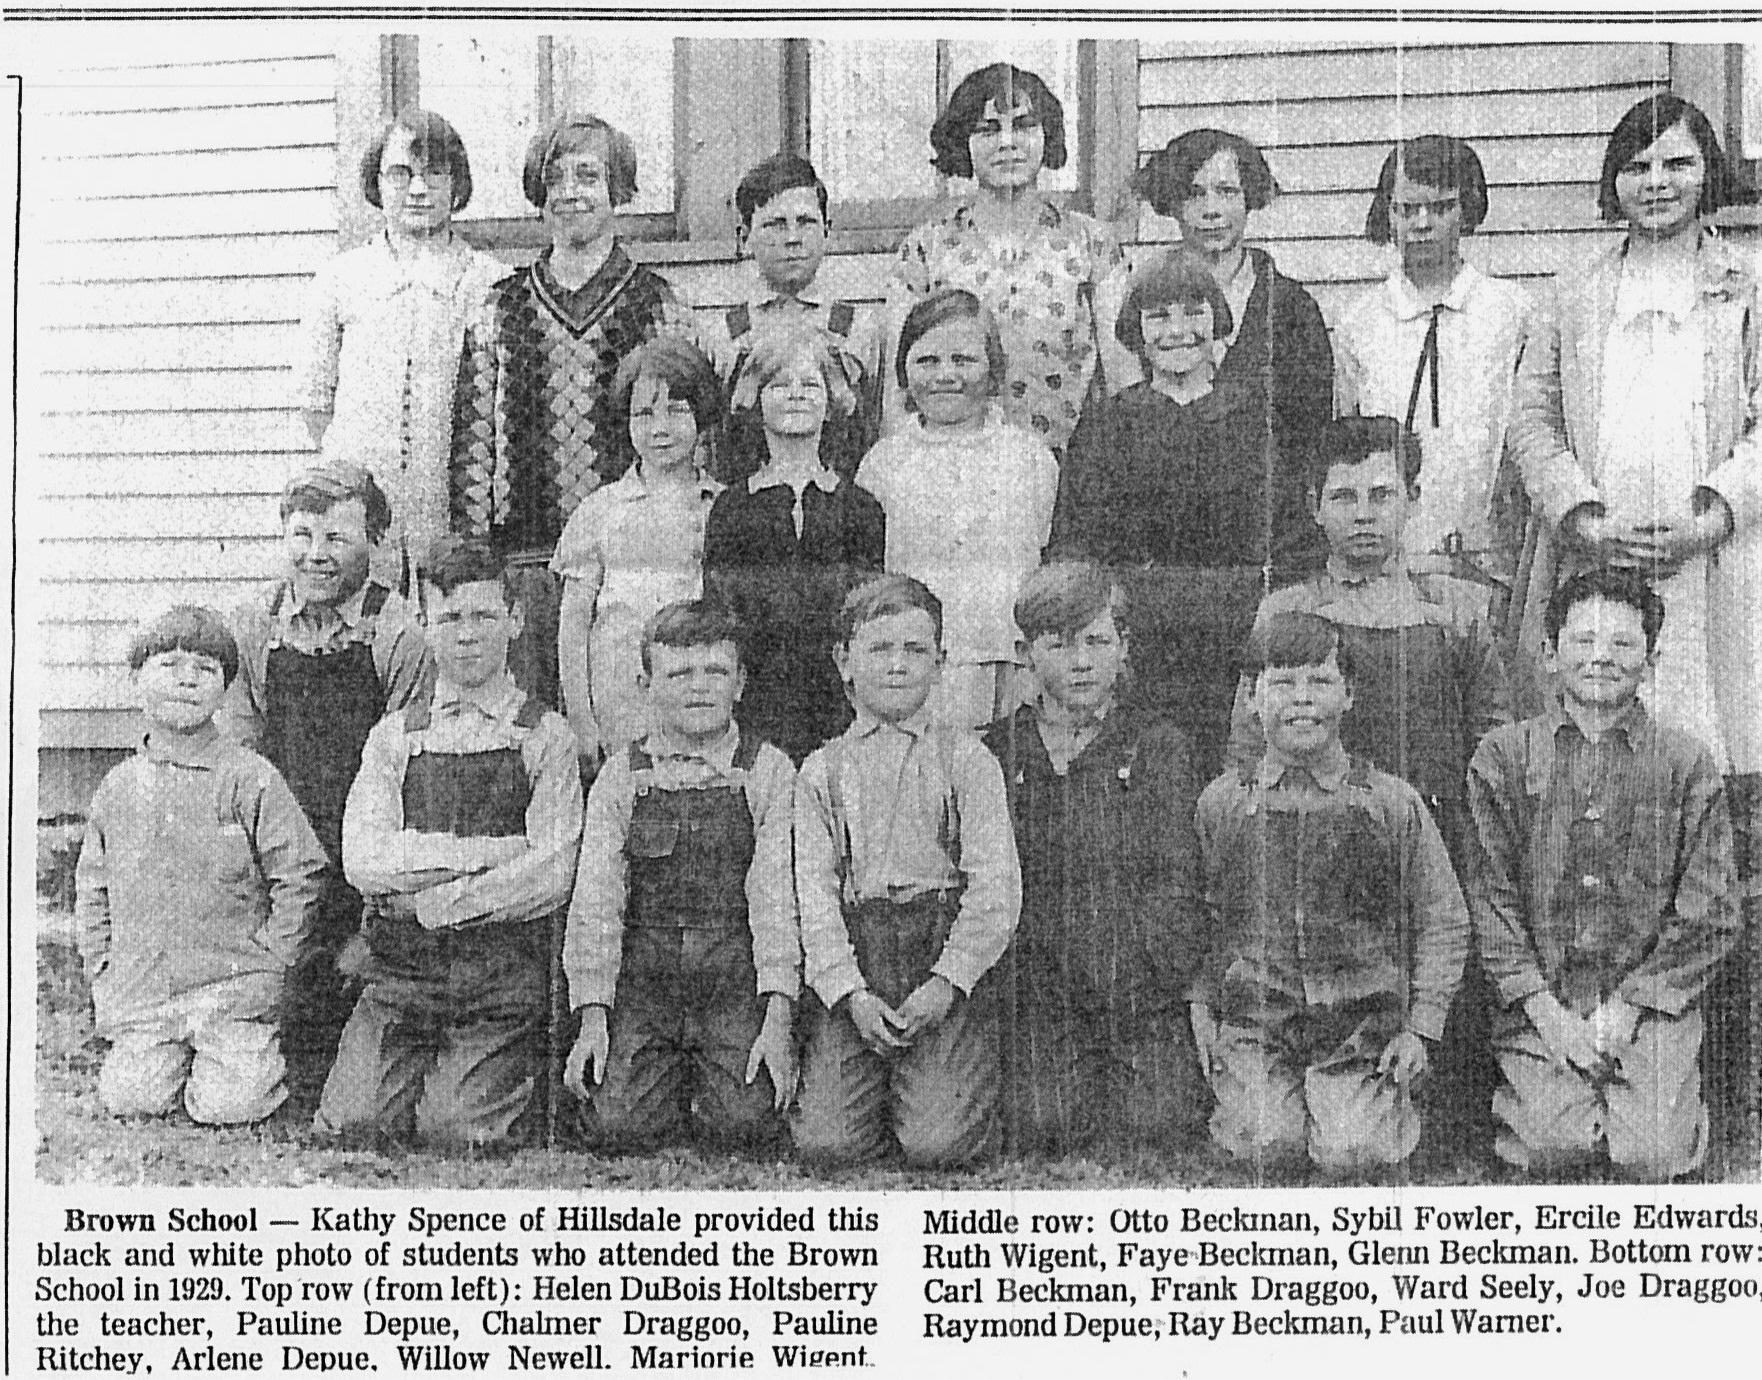 Brown School 1929 HDN